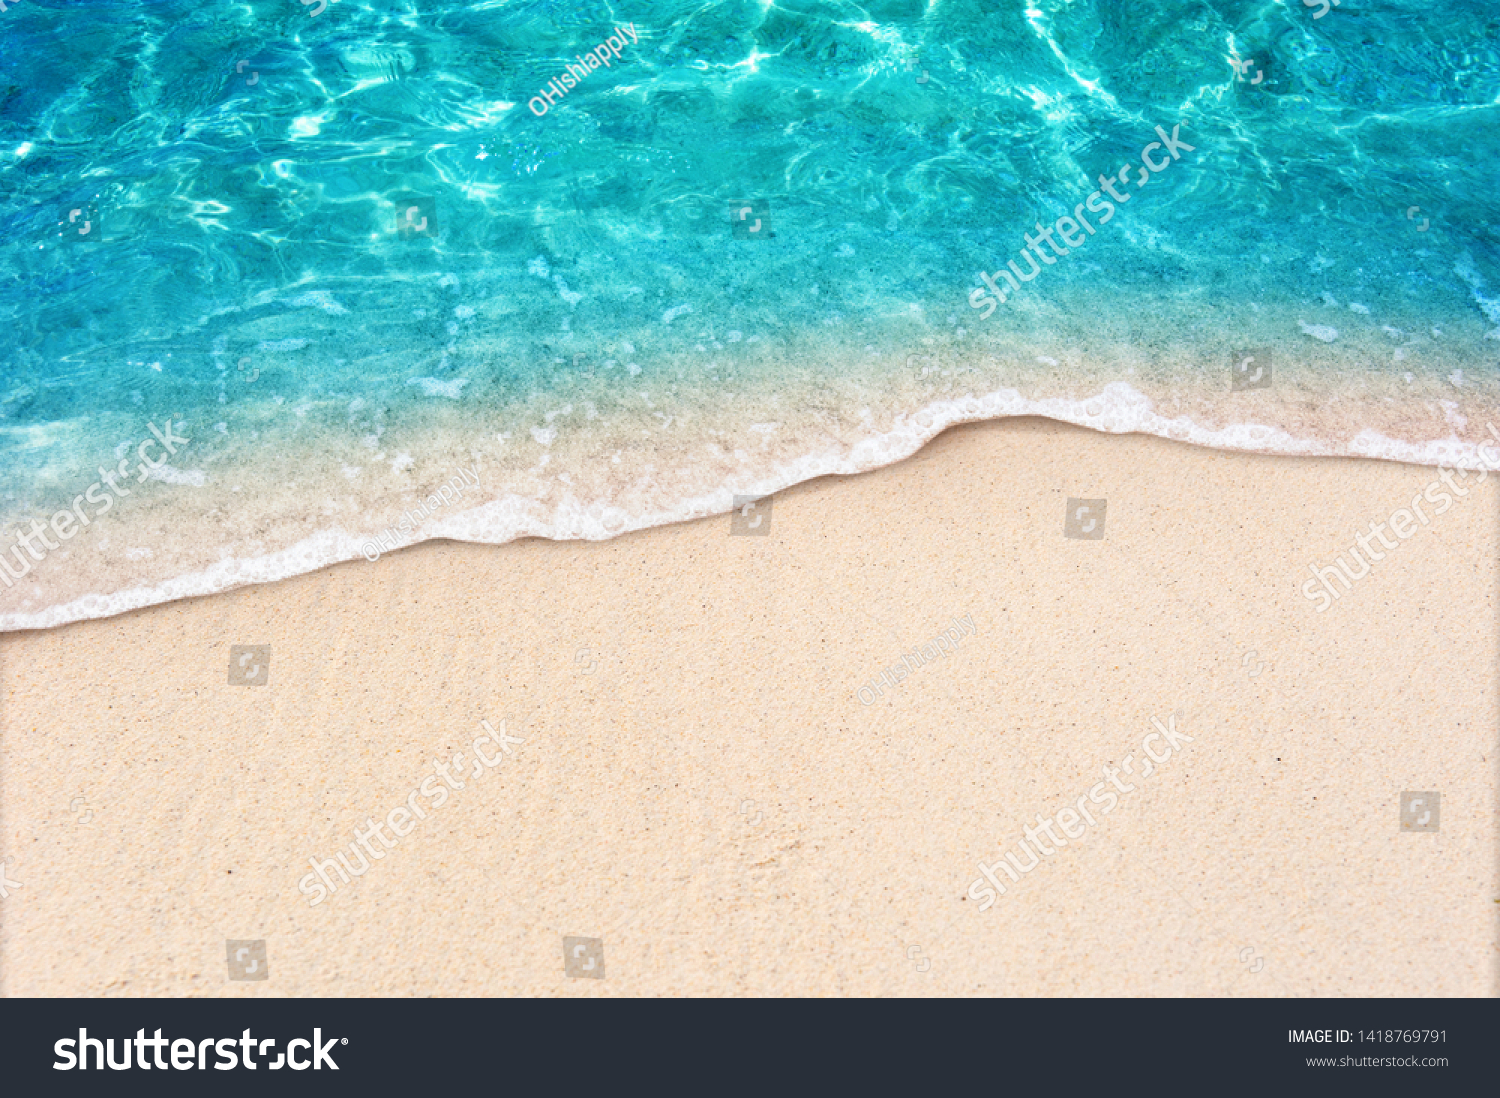 Soft blue ocean wave on clean sandy beach #1418769791